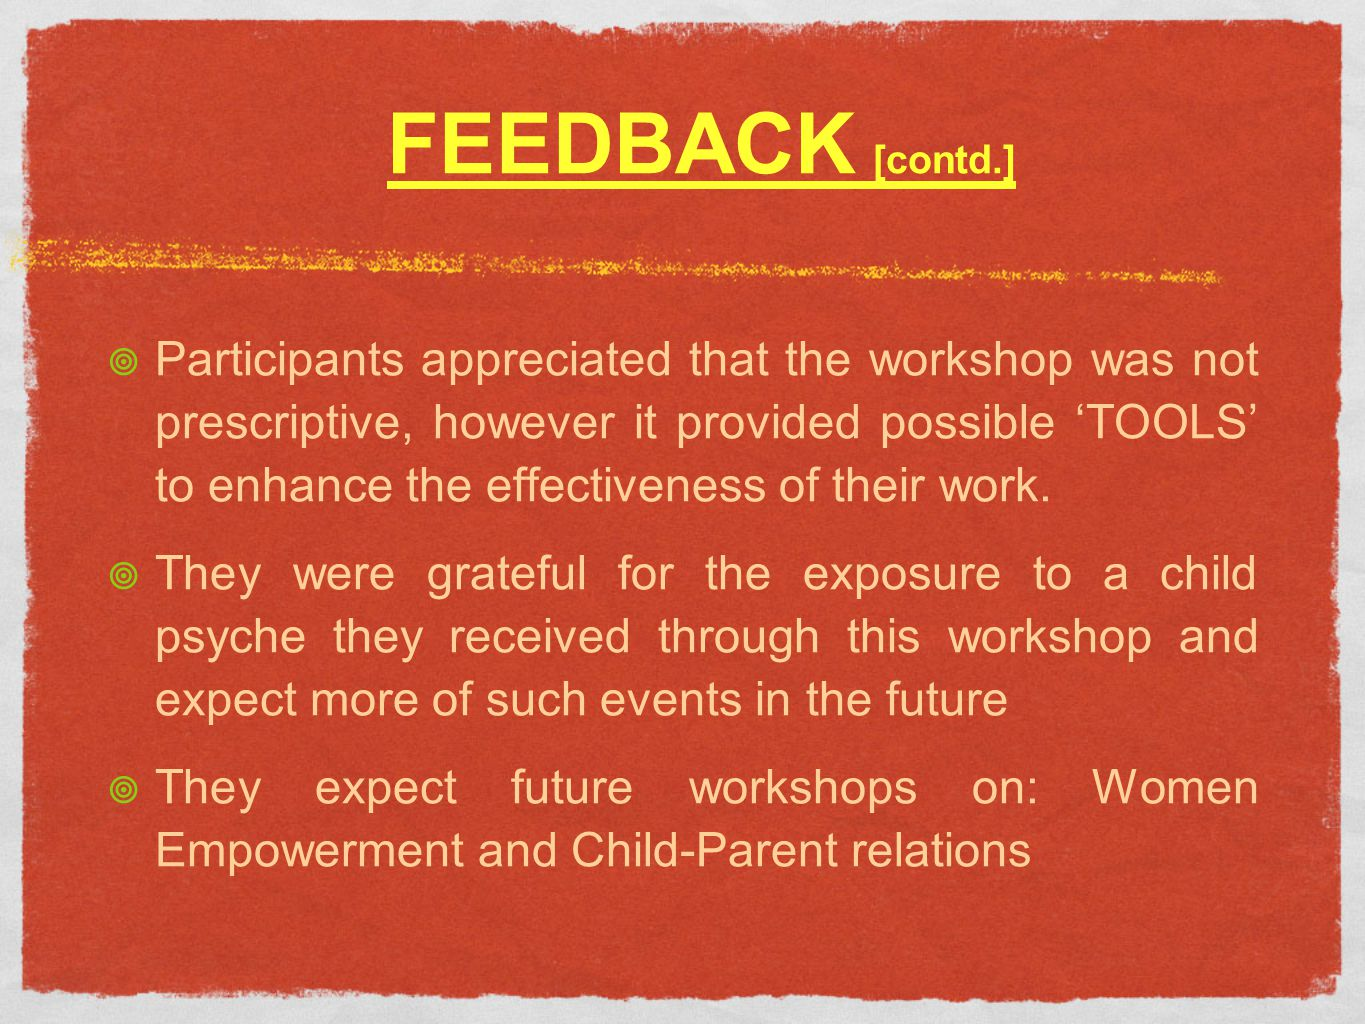 FEEDBACK [contd.] Participants appreciated that the workshop was not prescriptive, however it provided possible TOOLS to enhance the effectiveness of their work.